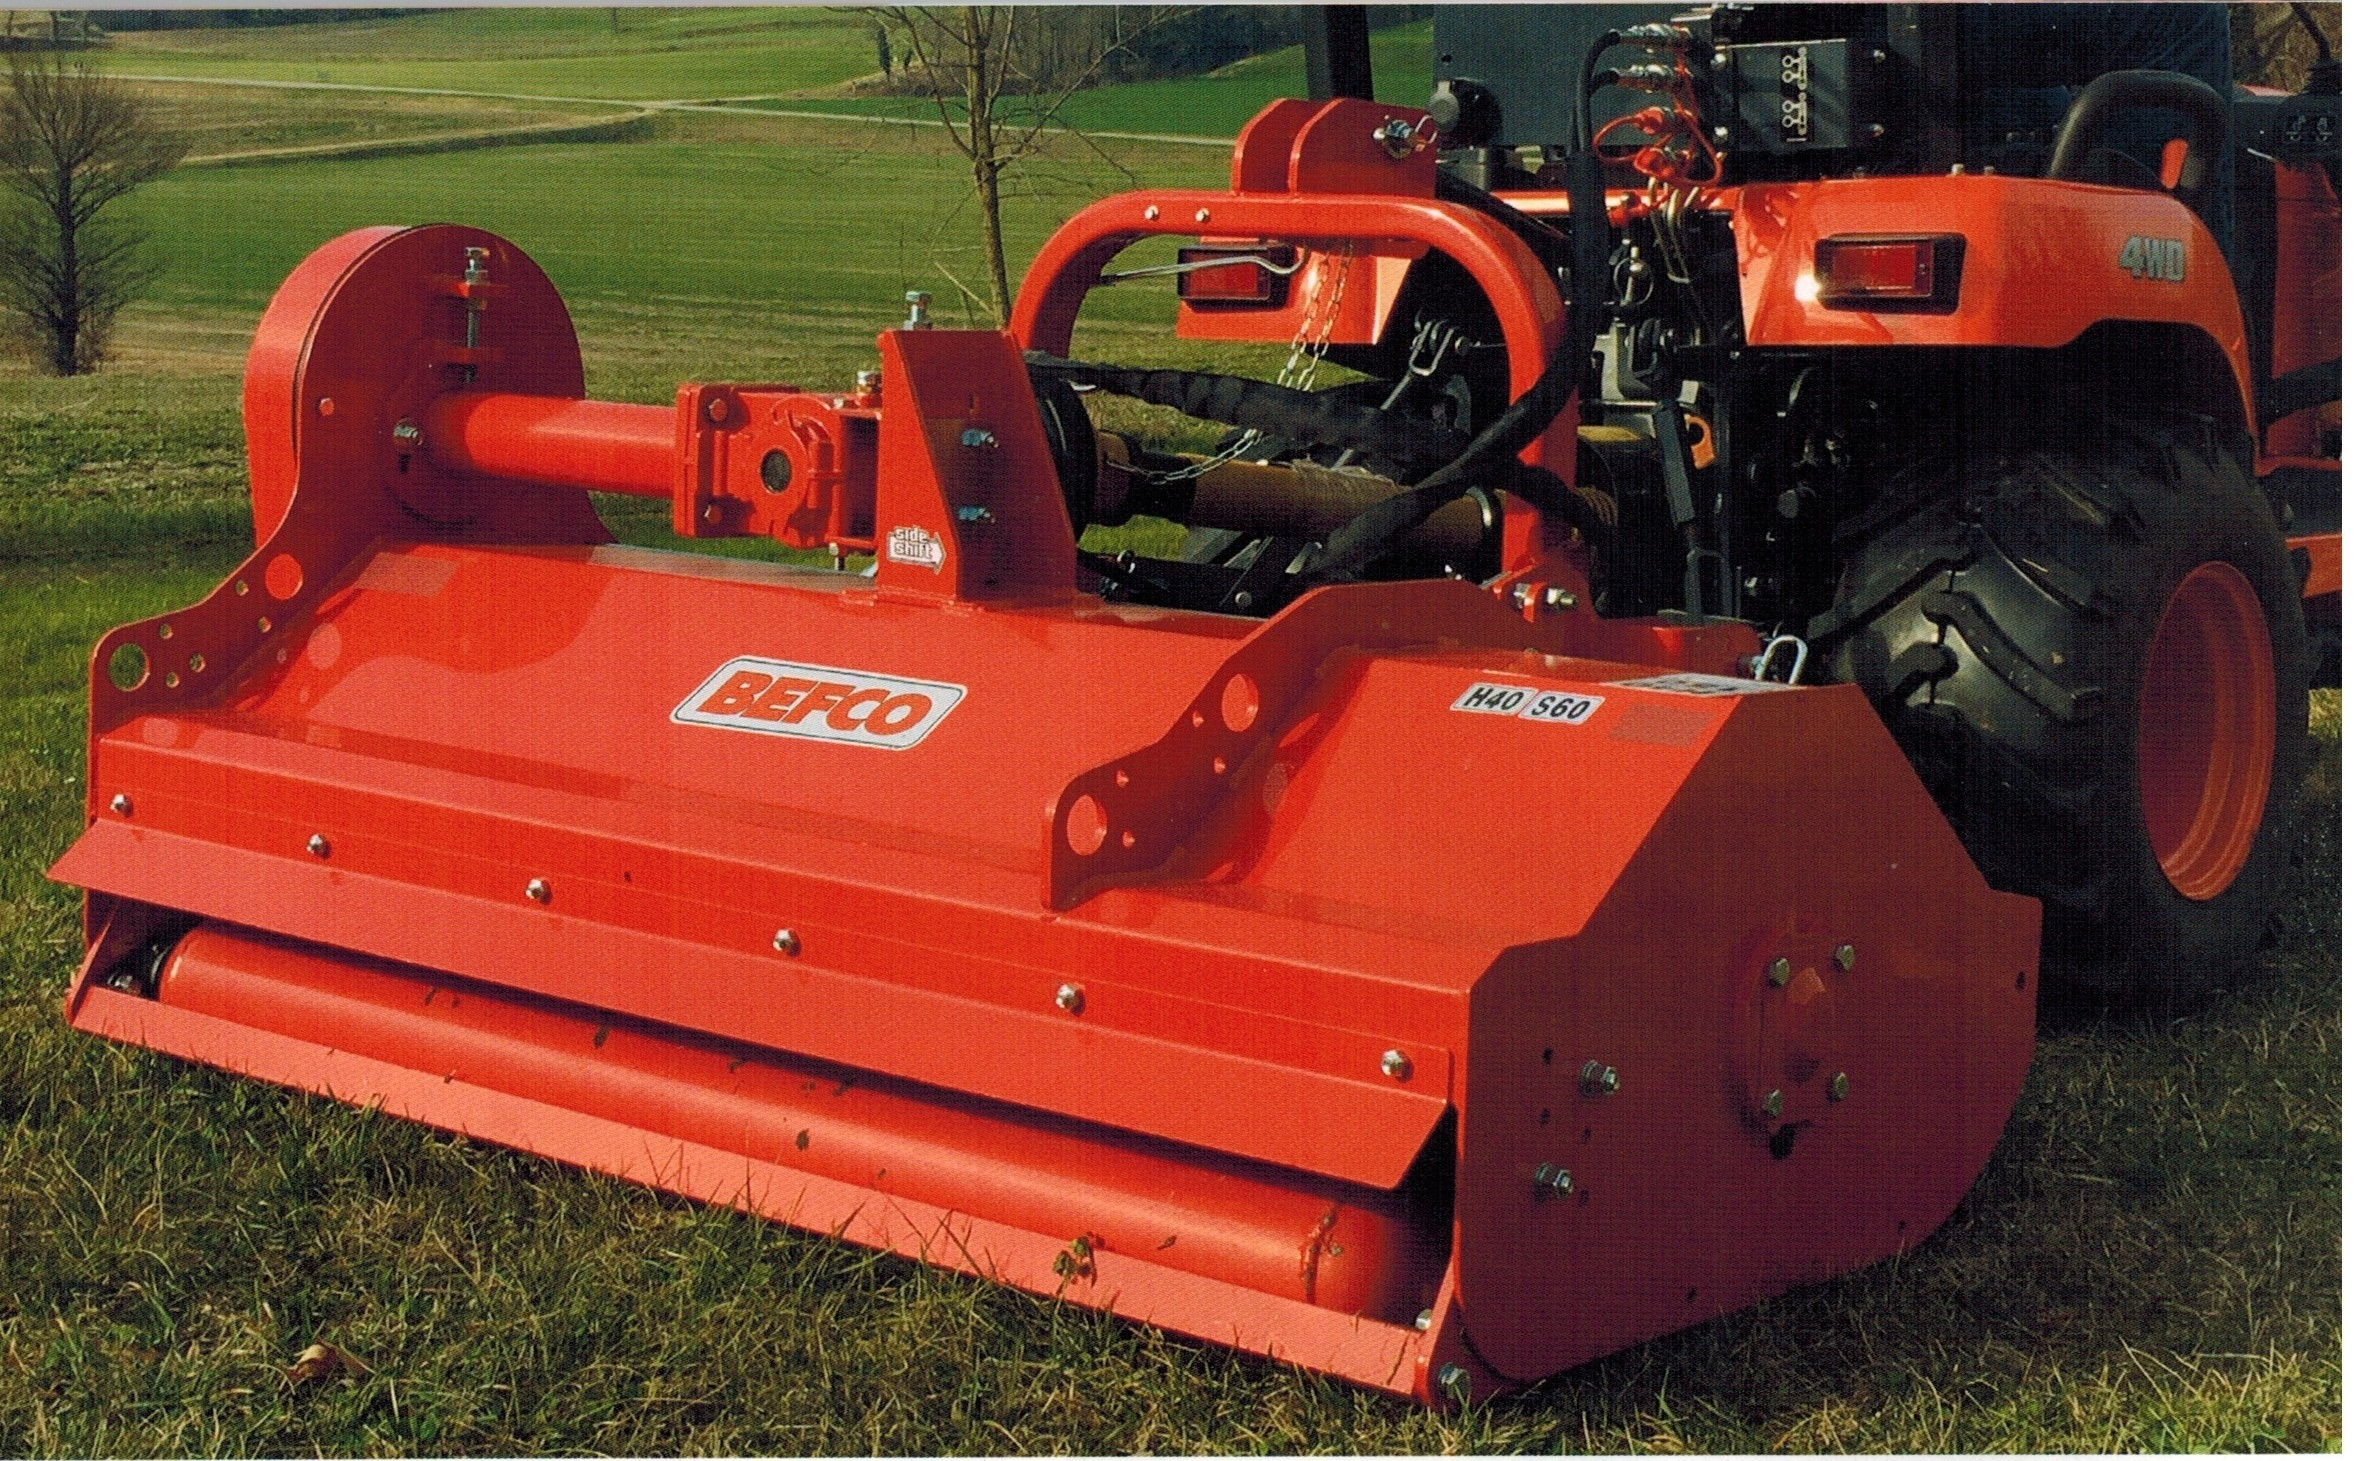 H40-S60 Befco Flail Mower With Side Shift 60 Inches Wide